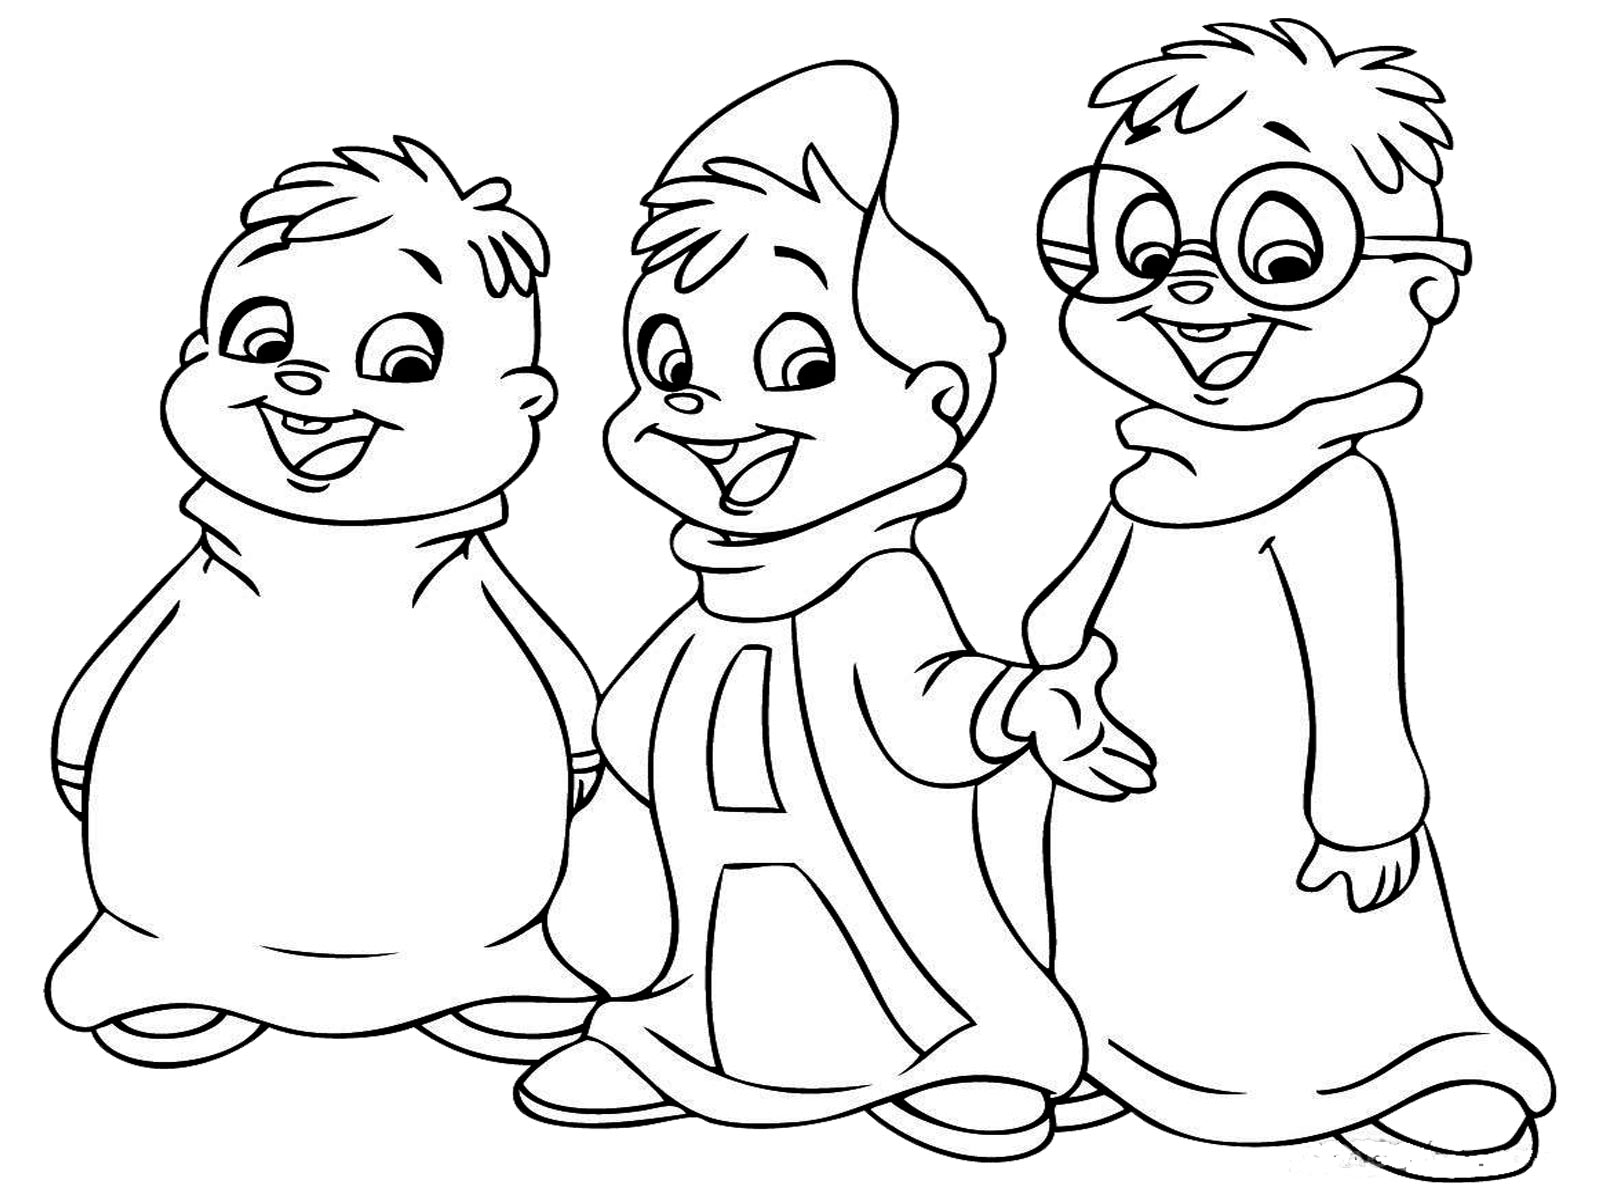 1600x1200 Cartoon Coloring Pages For Boys Printable